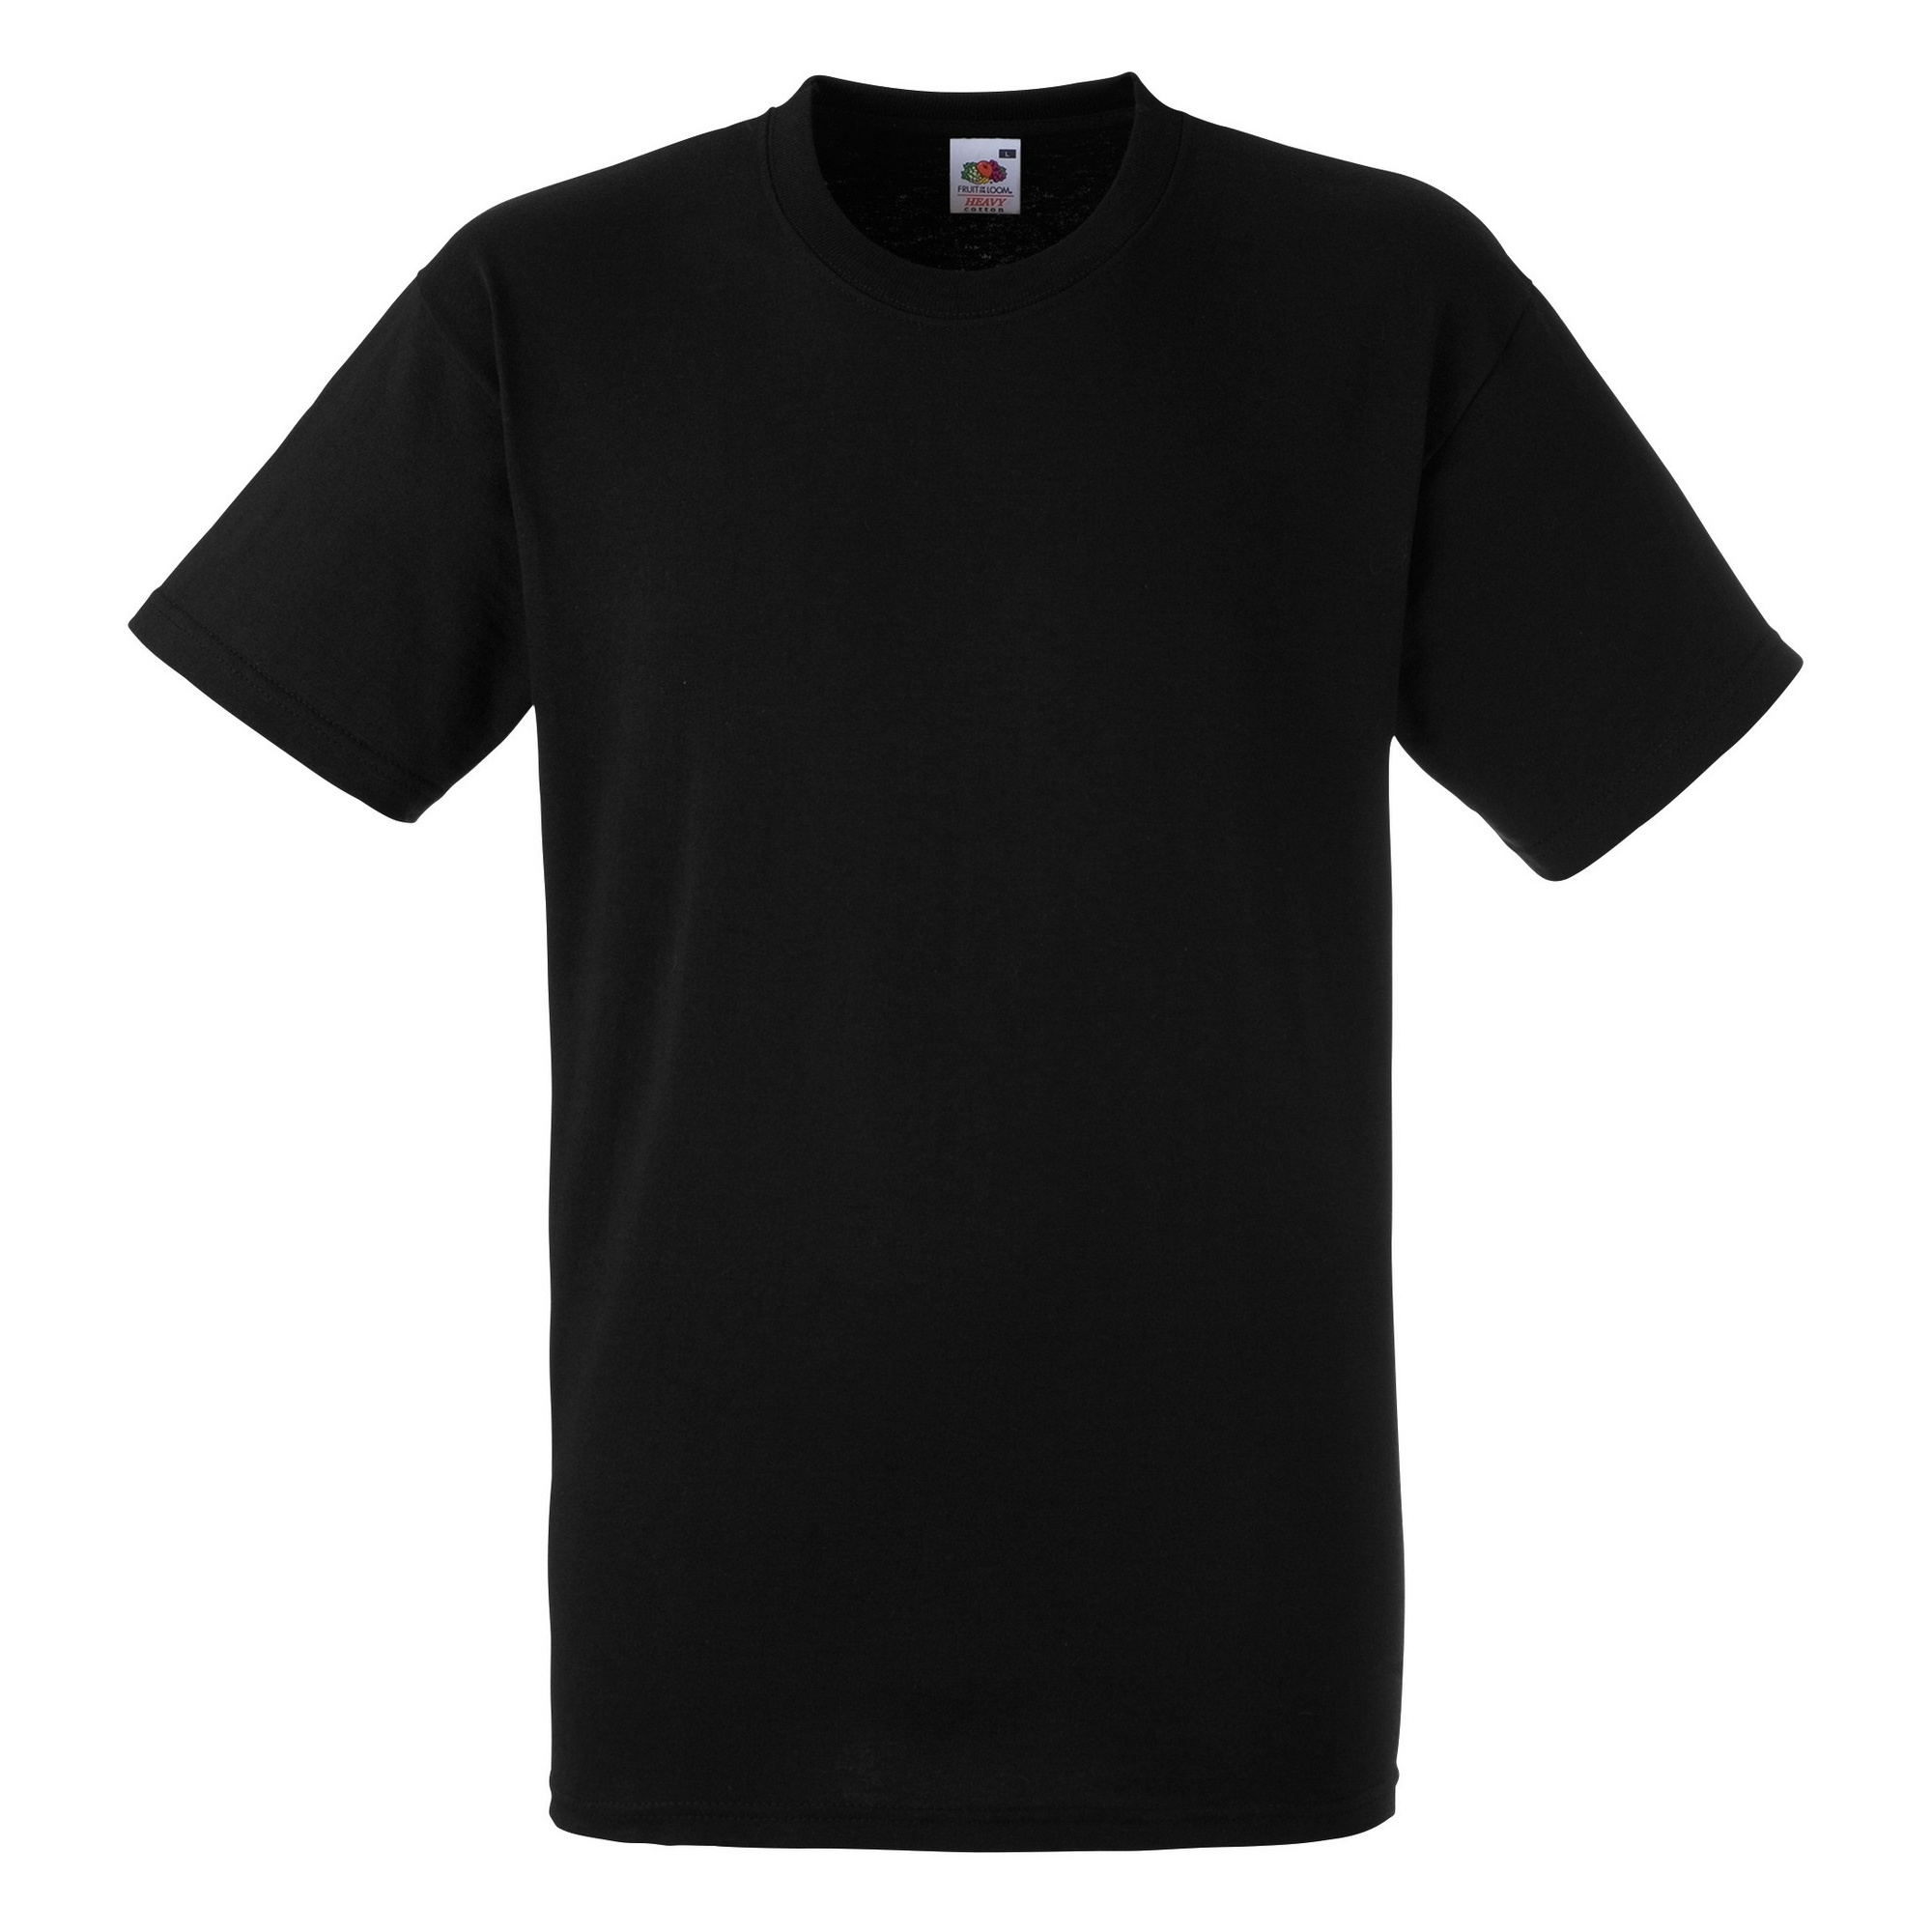 Fruit Of The Loom Mens Heavy Weight Belcoro® Cotton Short Sleeve T-Shirt (L) (Black)